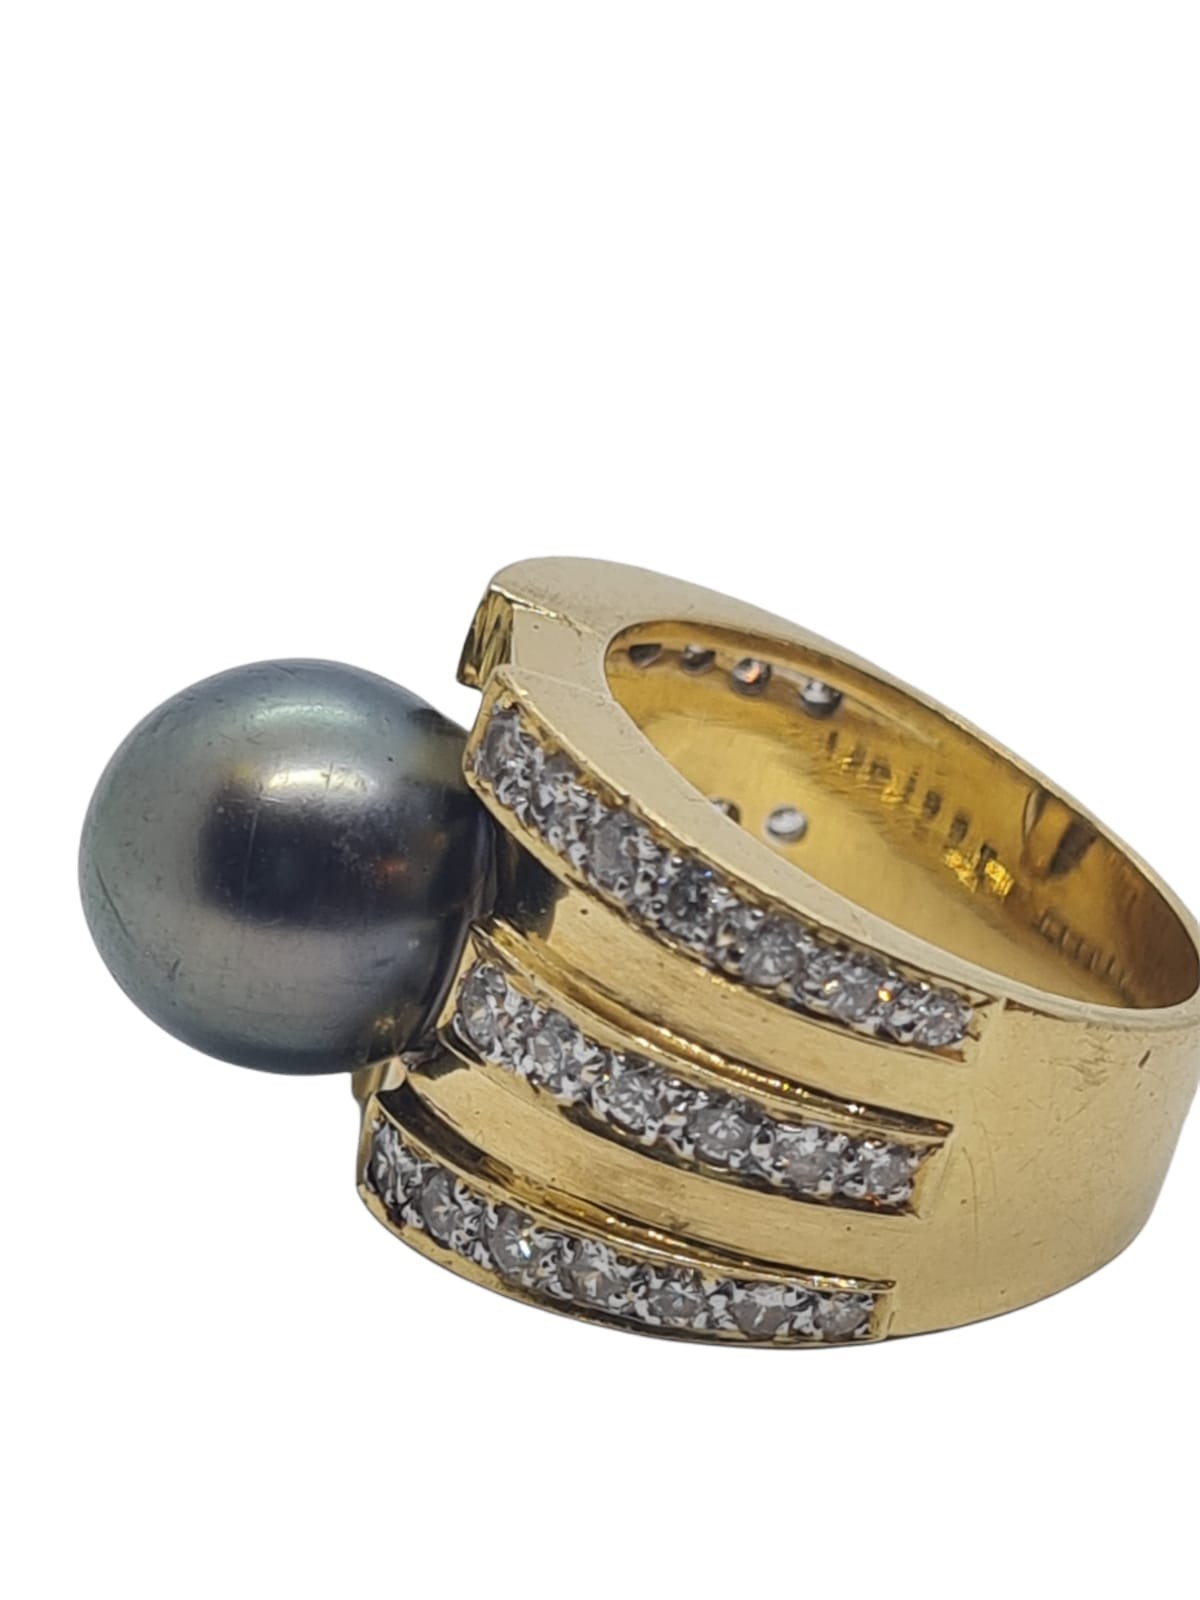 18k yellow gold with Tahitian pearl centre and decorated with 1.50ct diamonds approx, weight 12.8g - Image 3 of 9